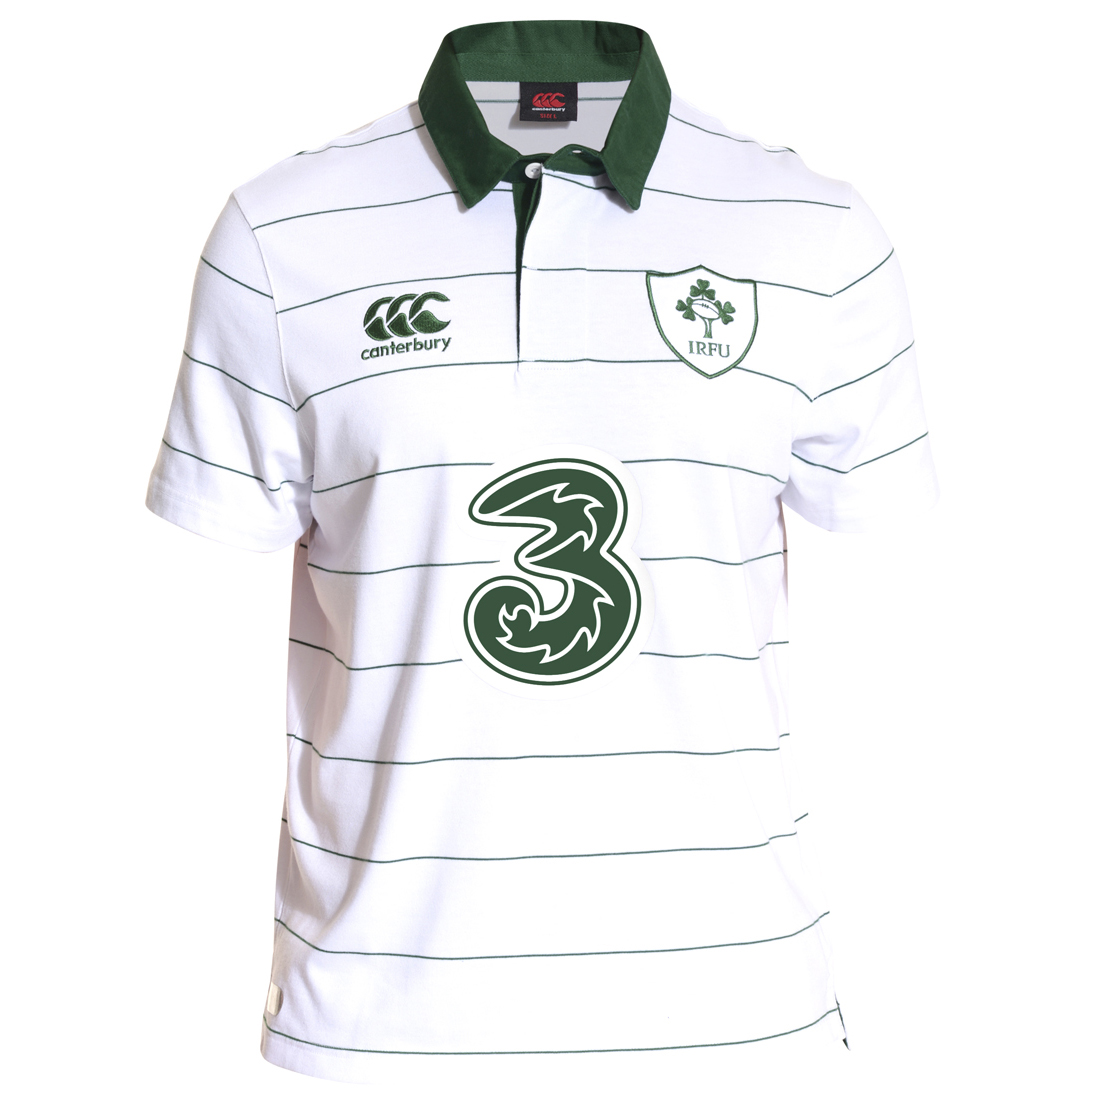 Ireland Alternate Classic Short Sleeve Rugby Shirt 2014/15 White